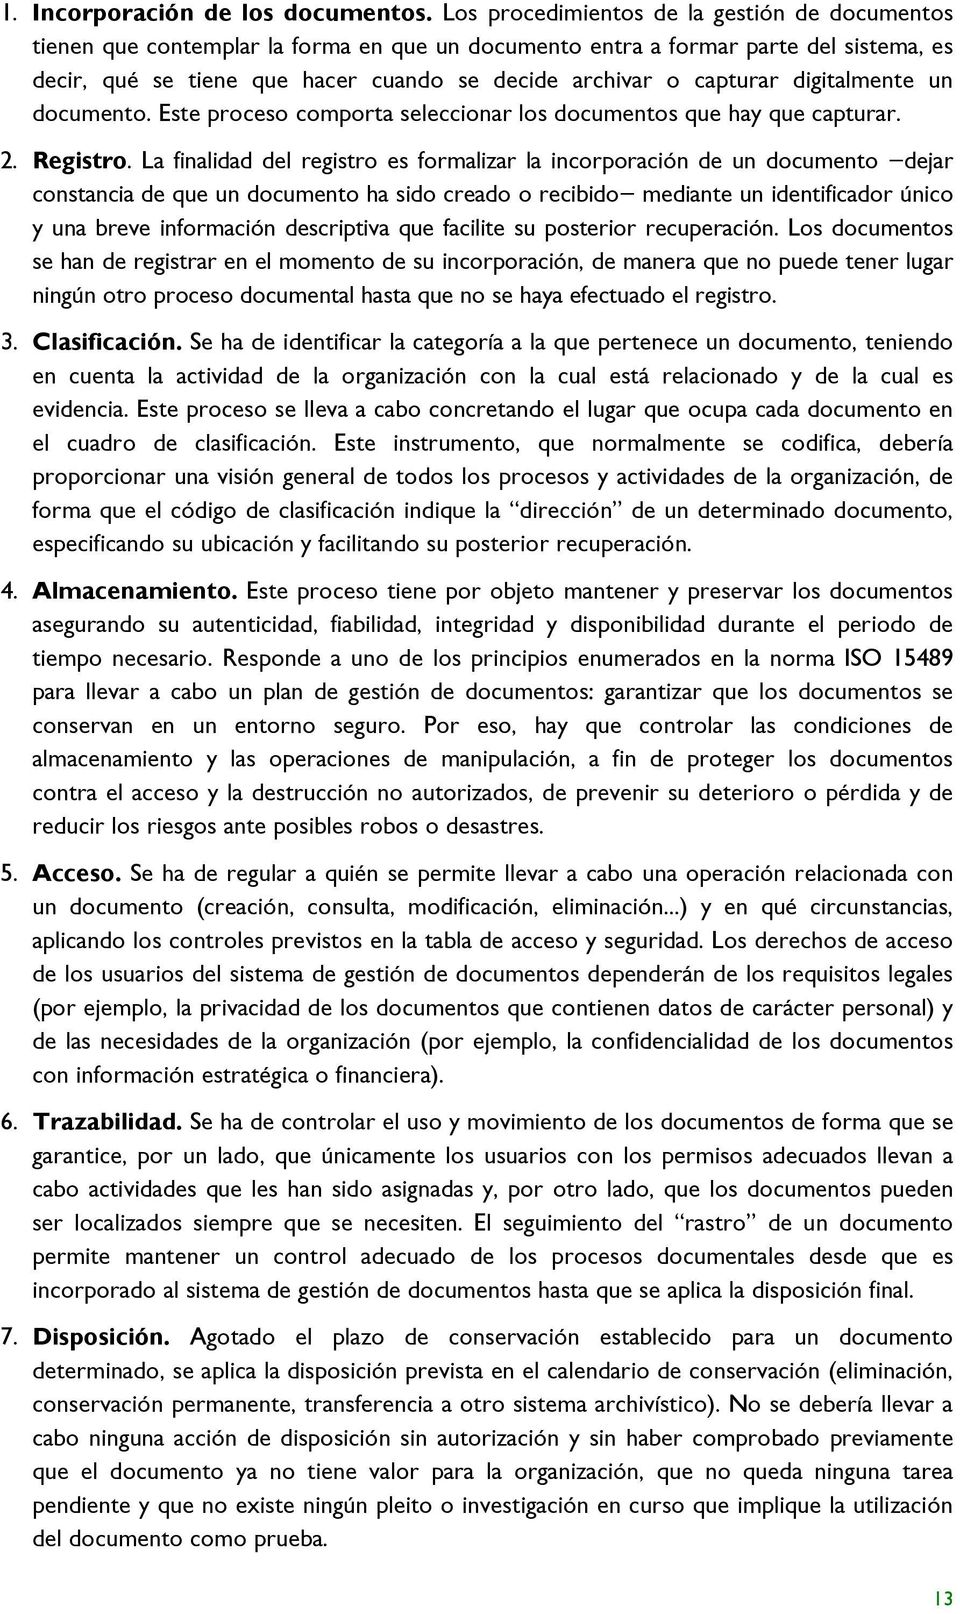 capturar digitalmente un documento. Este proceso comporta seleccionar los documentos que hay que capturar. 2. Registro.